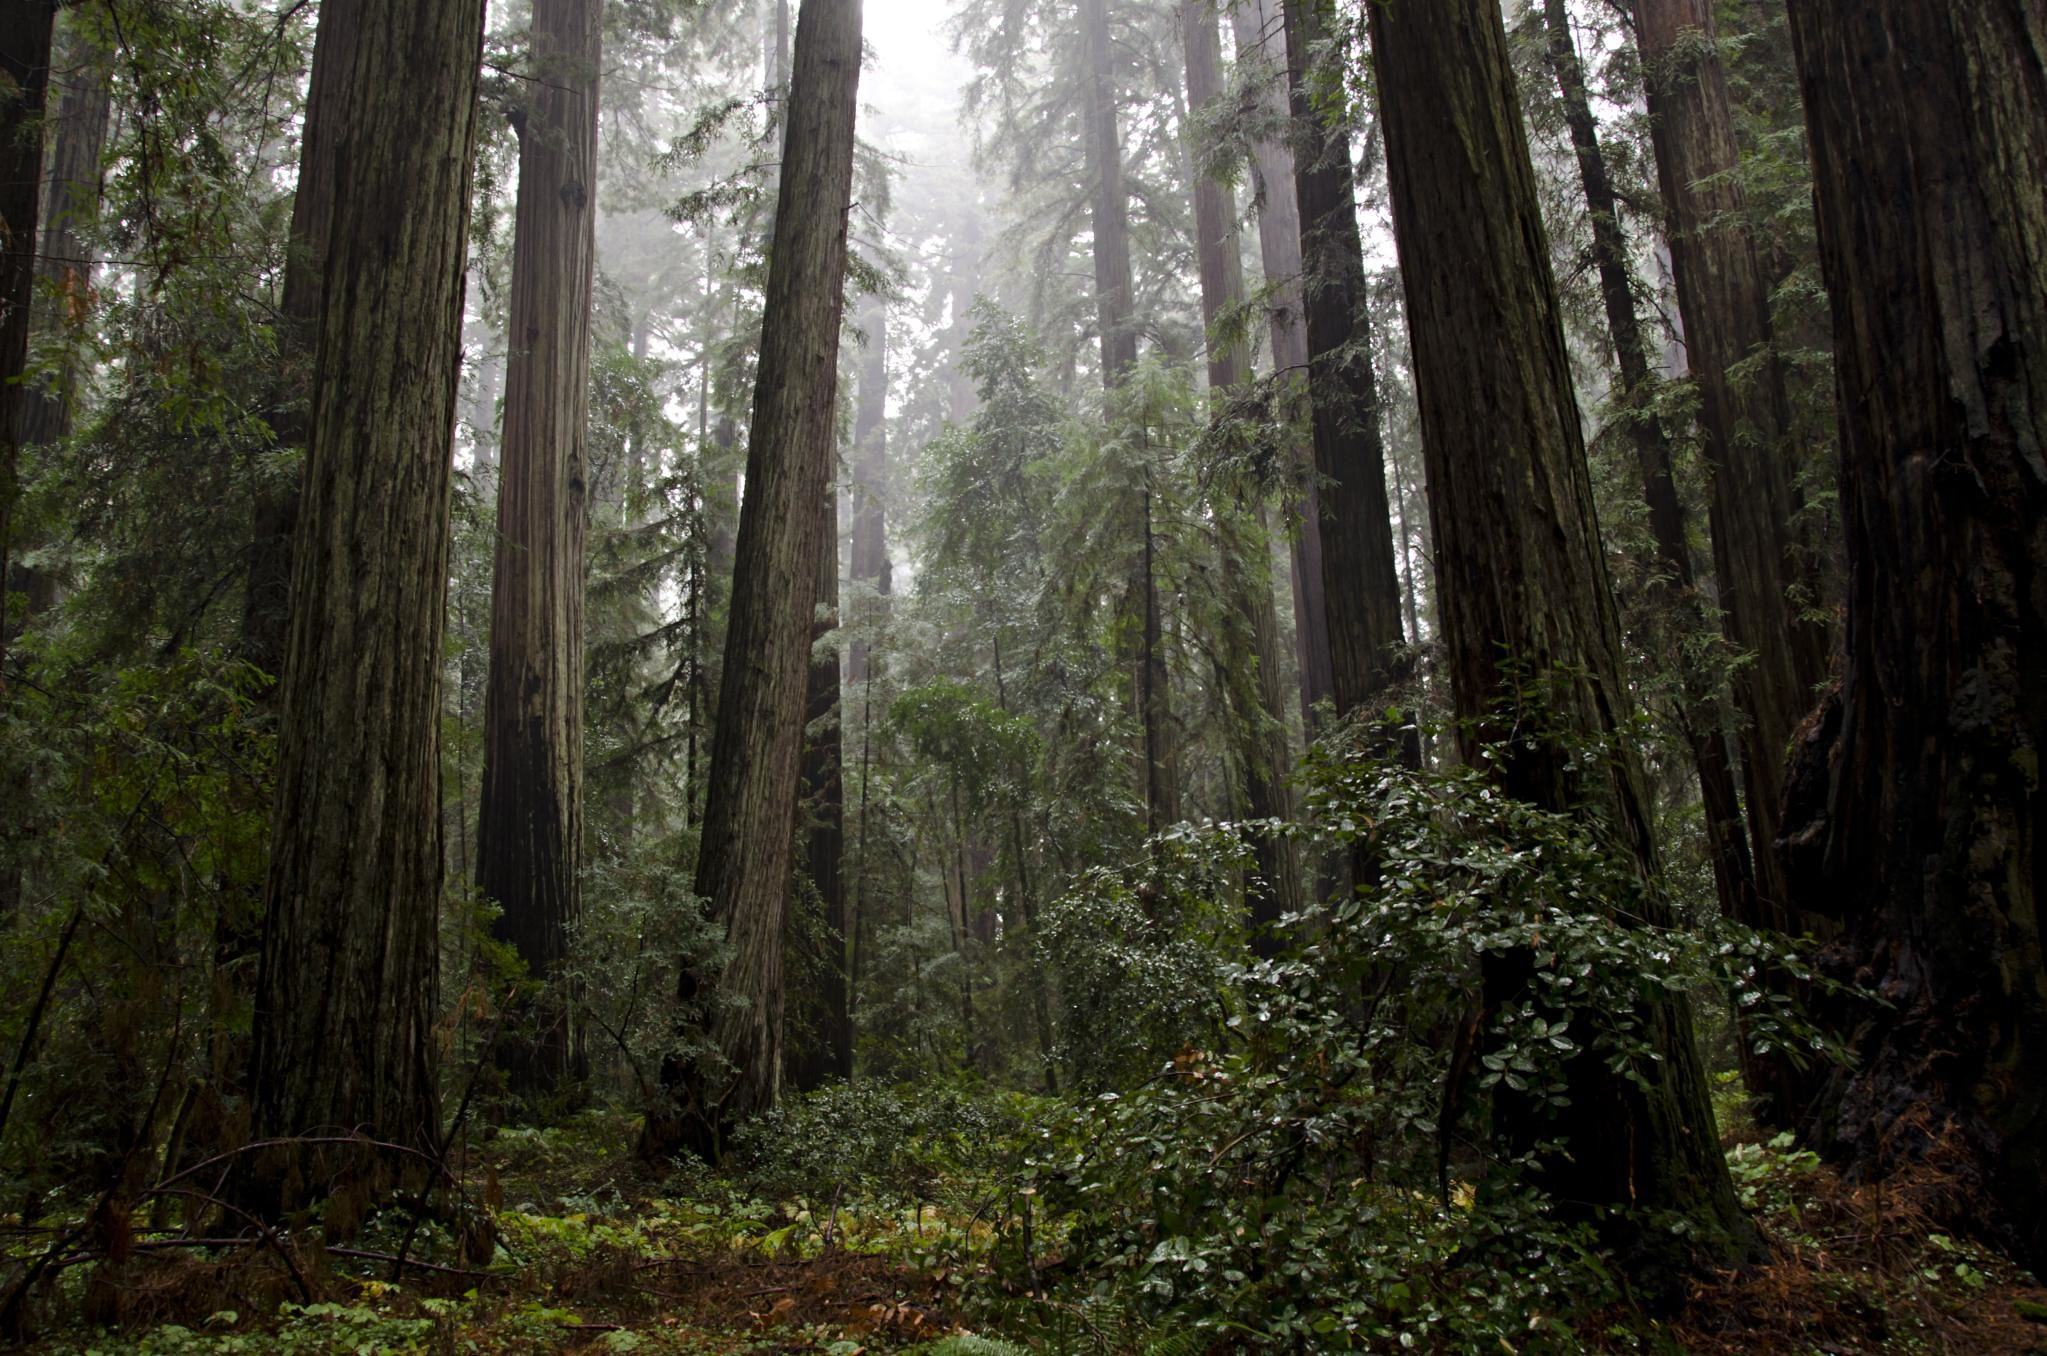 Redwood trees in the mist